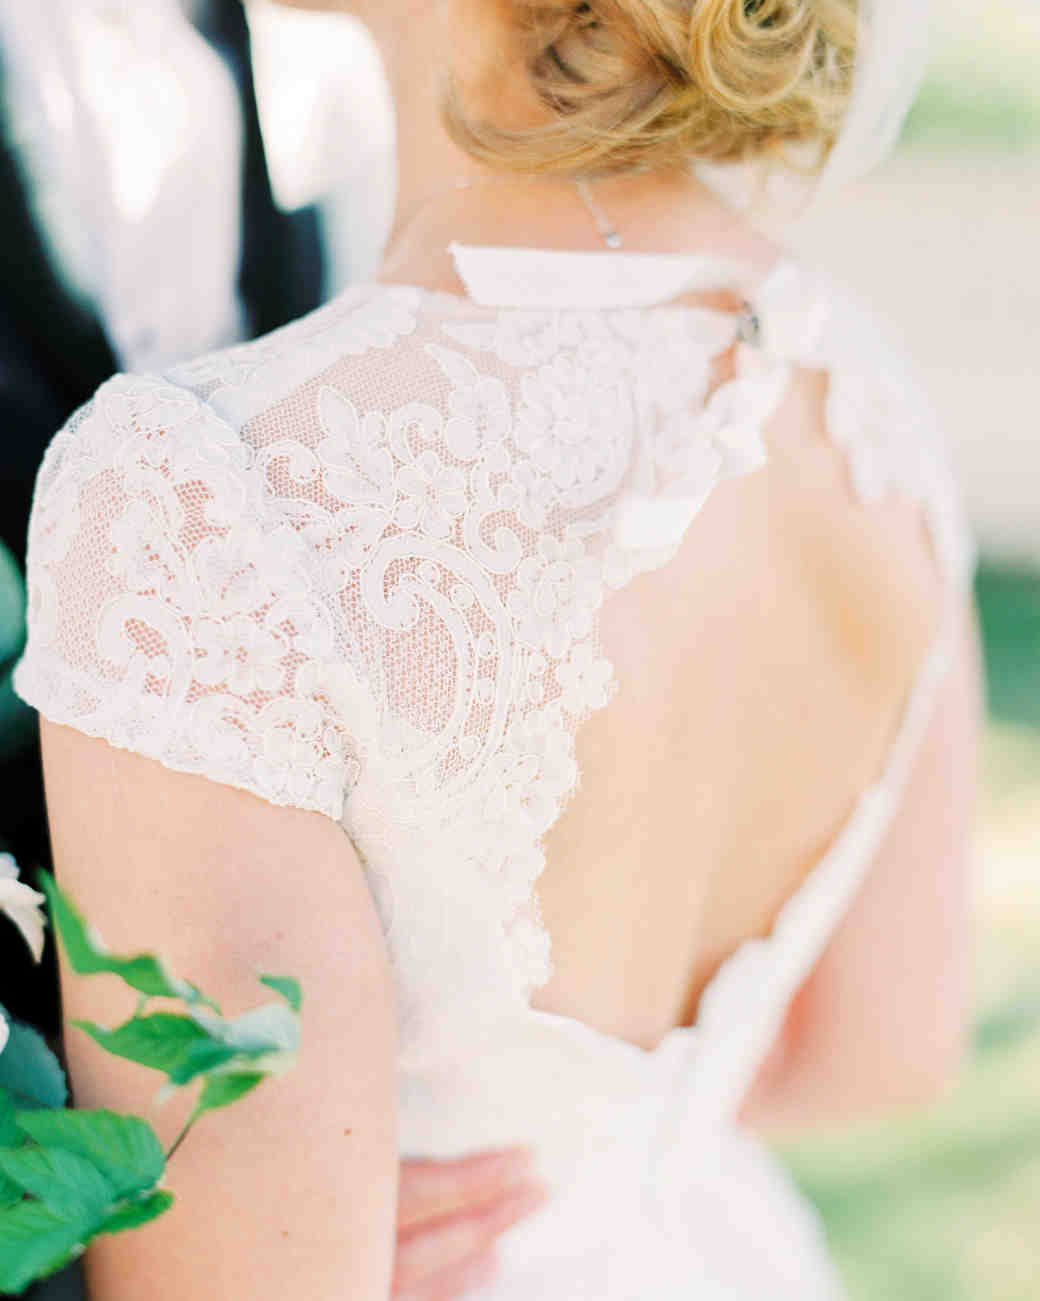 A Bride with an Open Back Wedding Dress